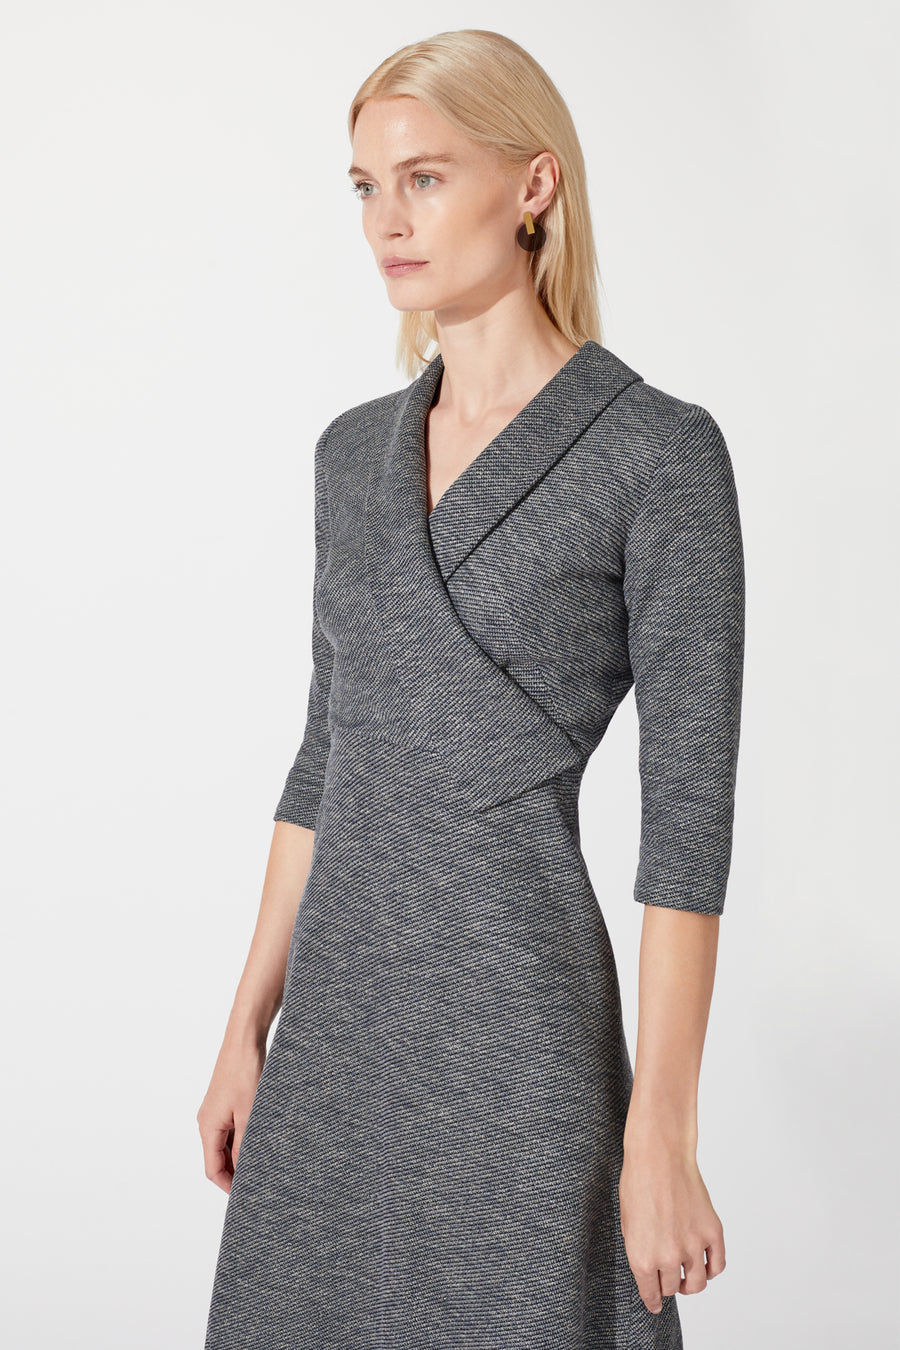 Farringdon Grey Twill Jacquard Dress